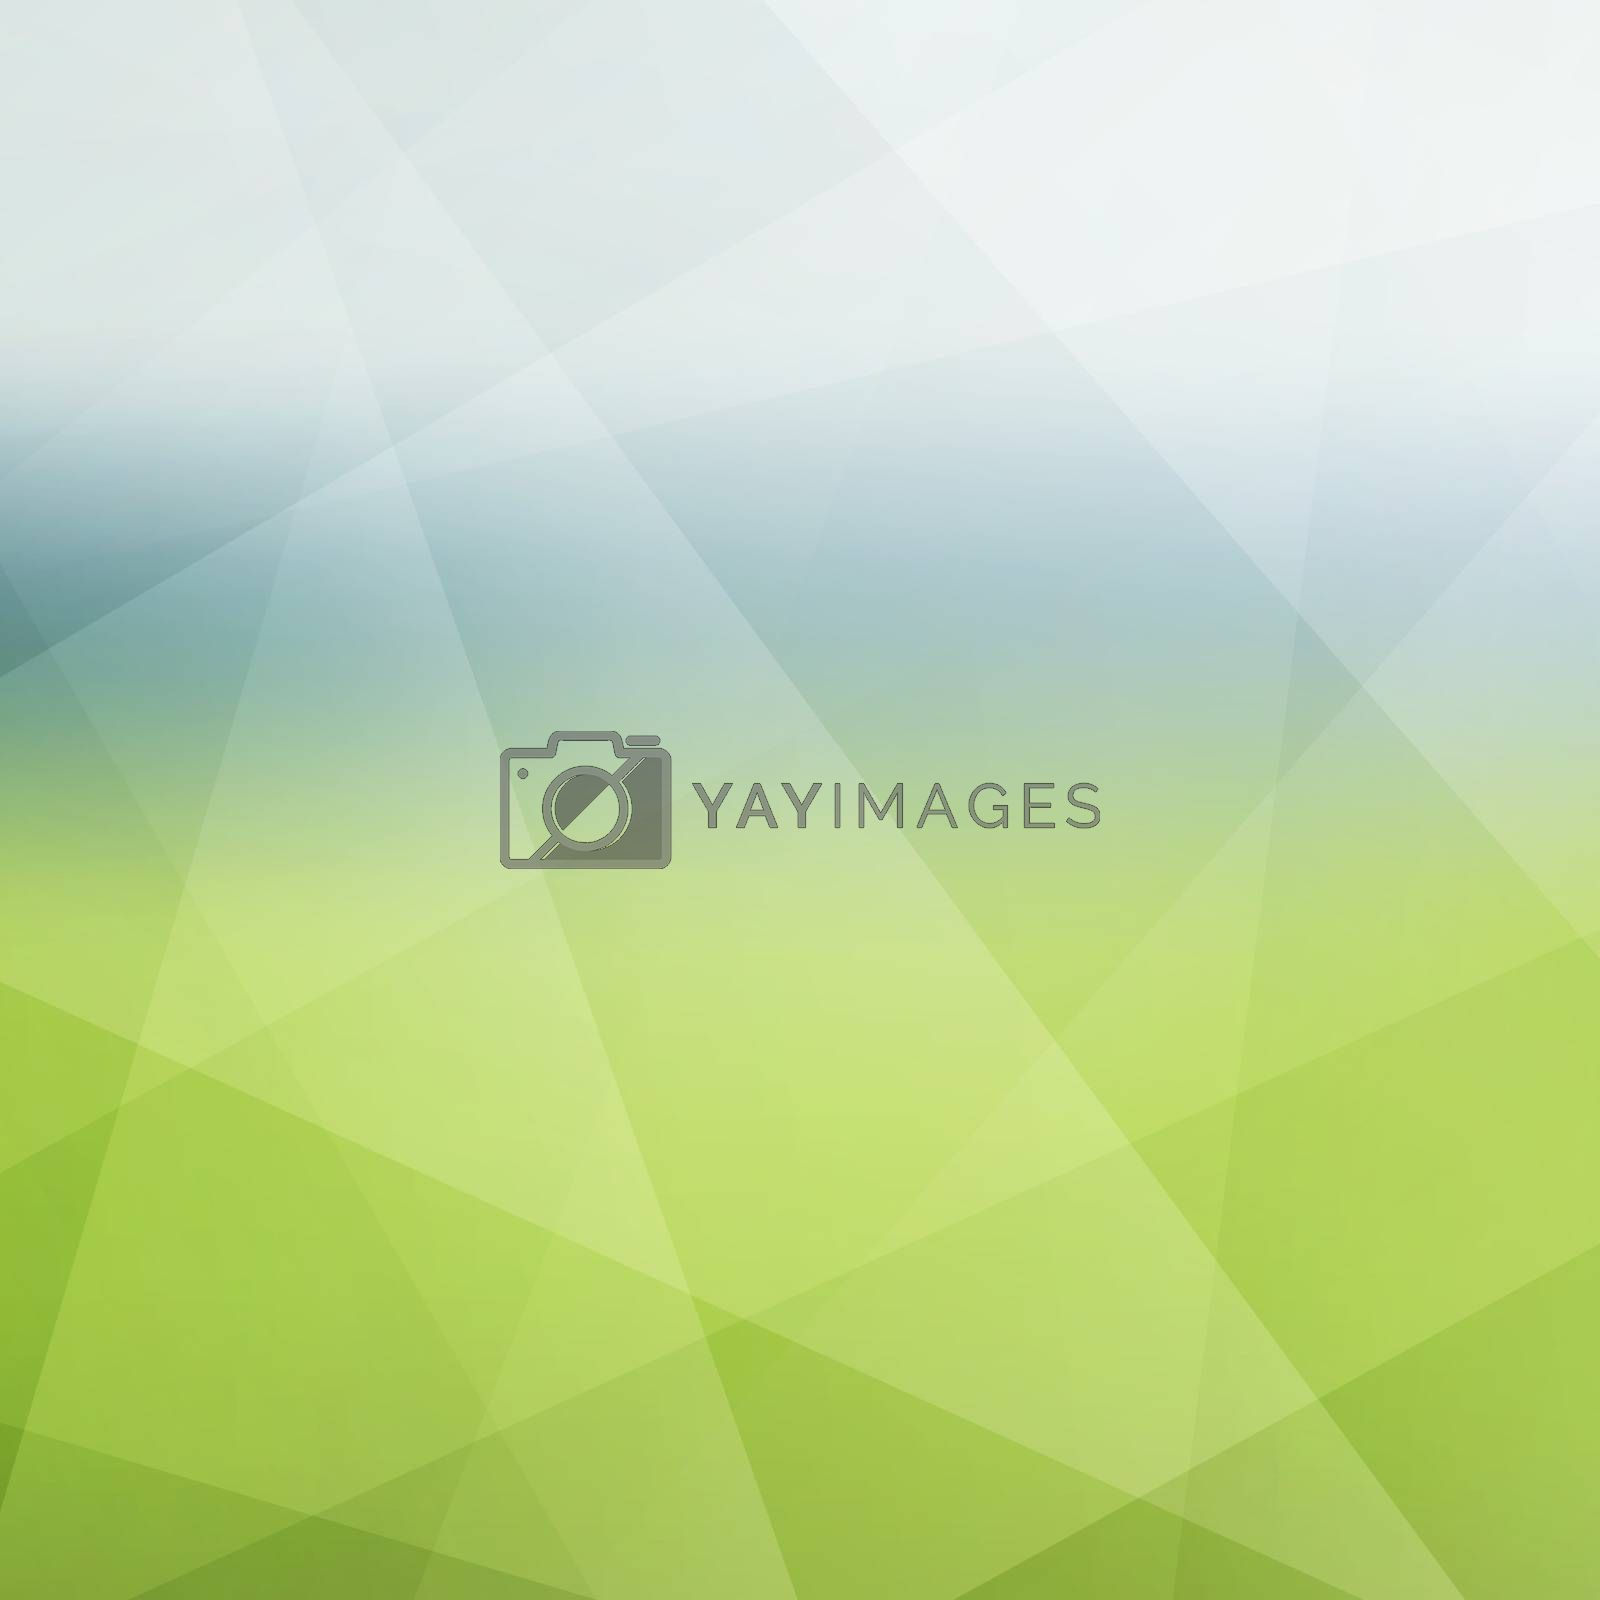 Nature background. Modern pattern. Abstract vector illustration. Can be used for your website or presentation.